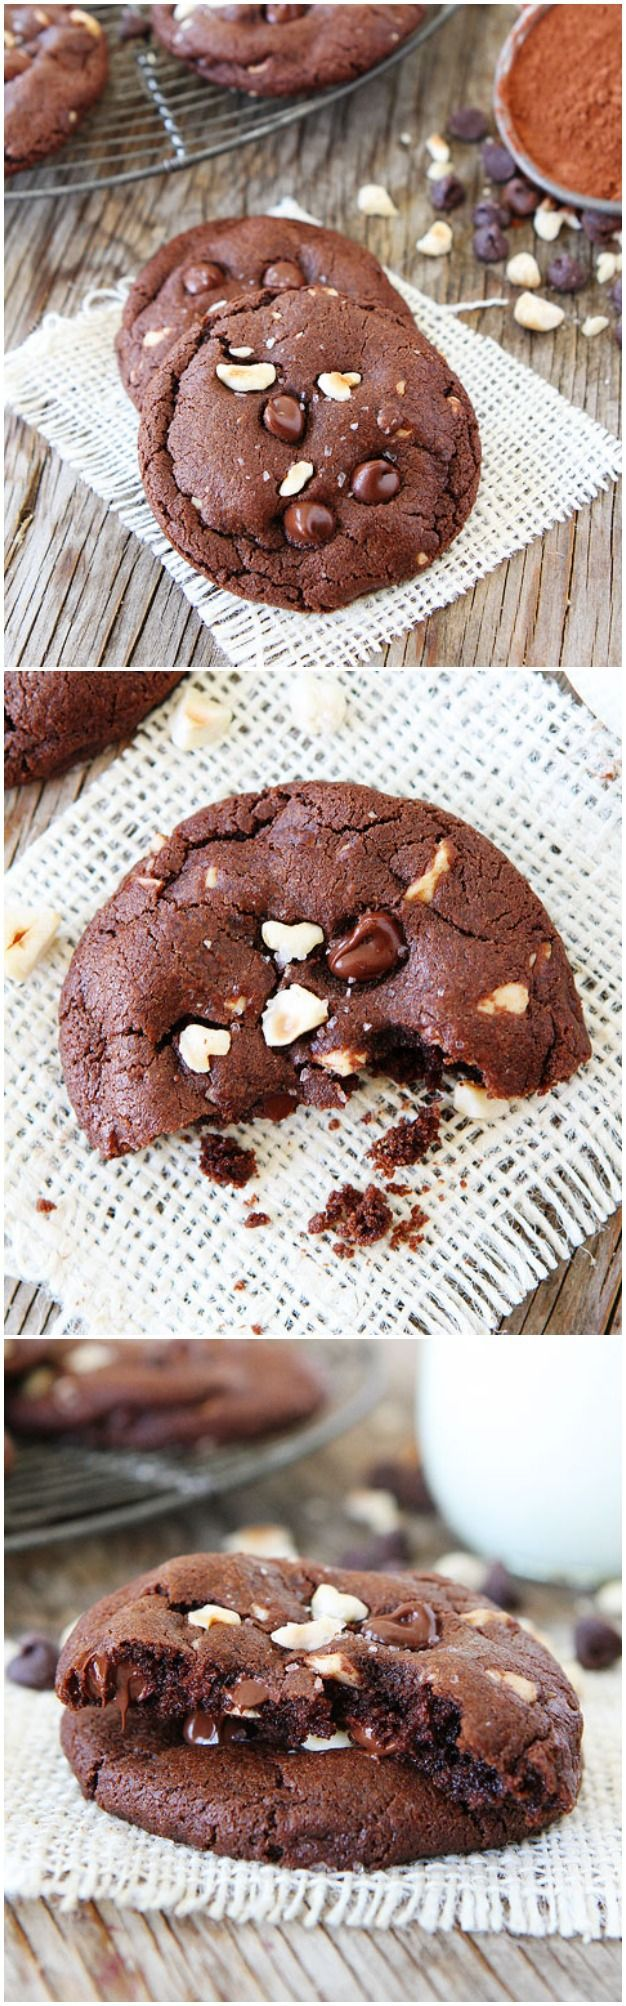 Double Chocolate Hazelnut Cookies with Sea Salt Recipe on twopeasandtheirpod.com These cookies are divine!